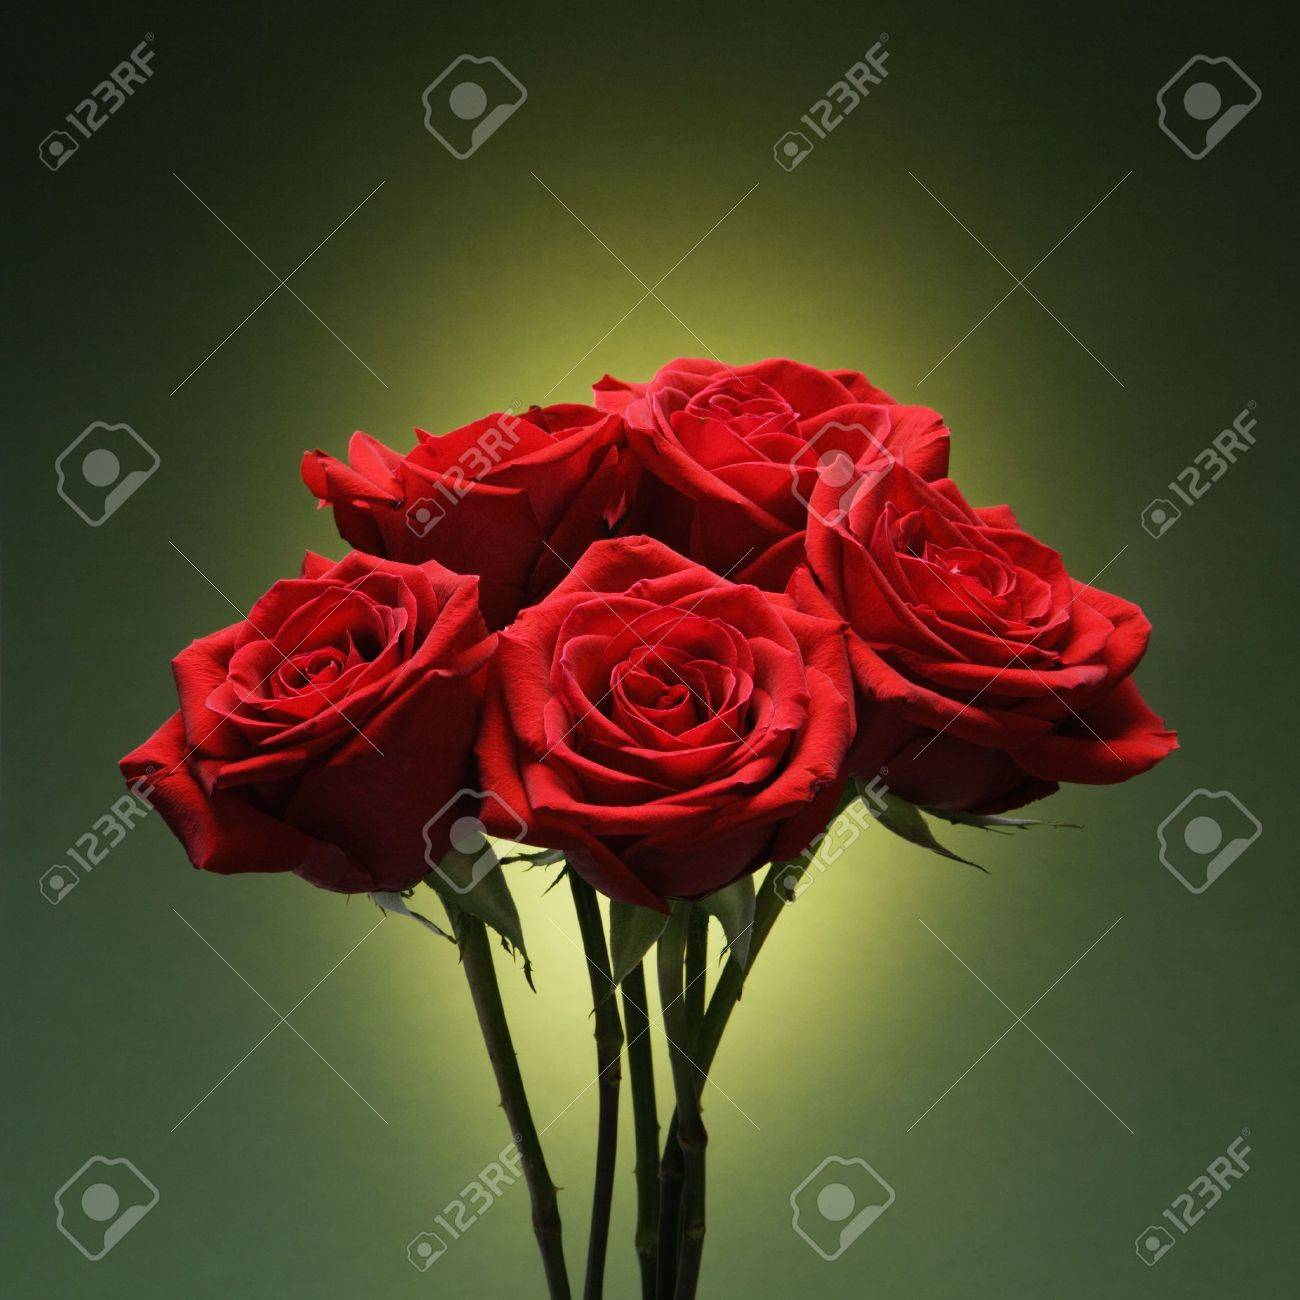 Bouquet of red roses against glowing green background. Stock Photo - 2190271